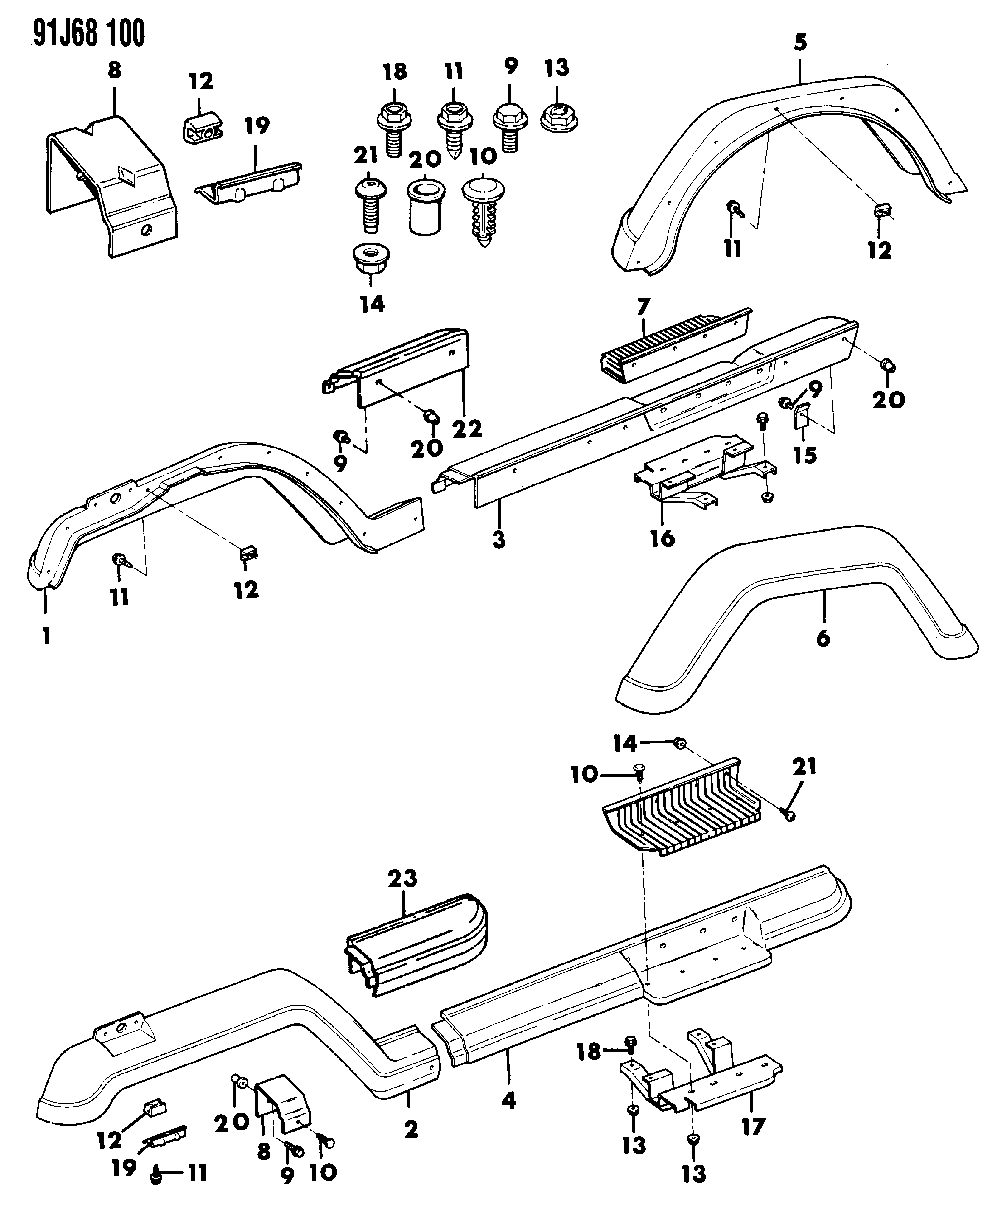 Reference Jeep Wrangler Guide Jurassic Park Motor Pool Lighting Schematic Fender Flares